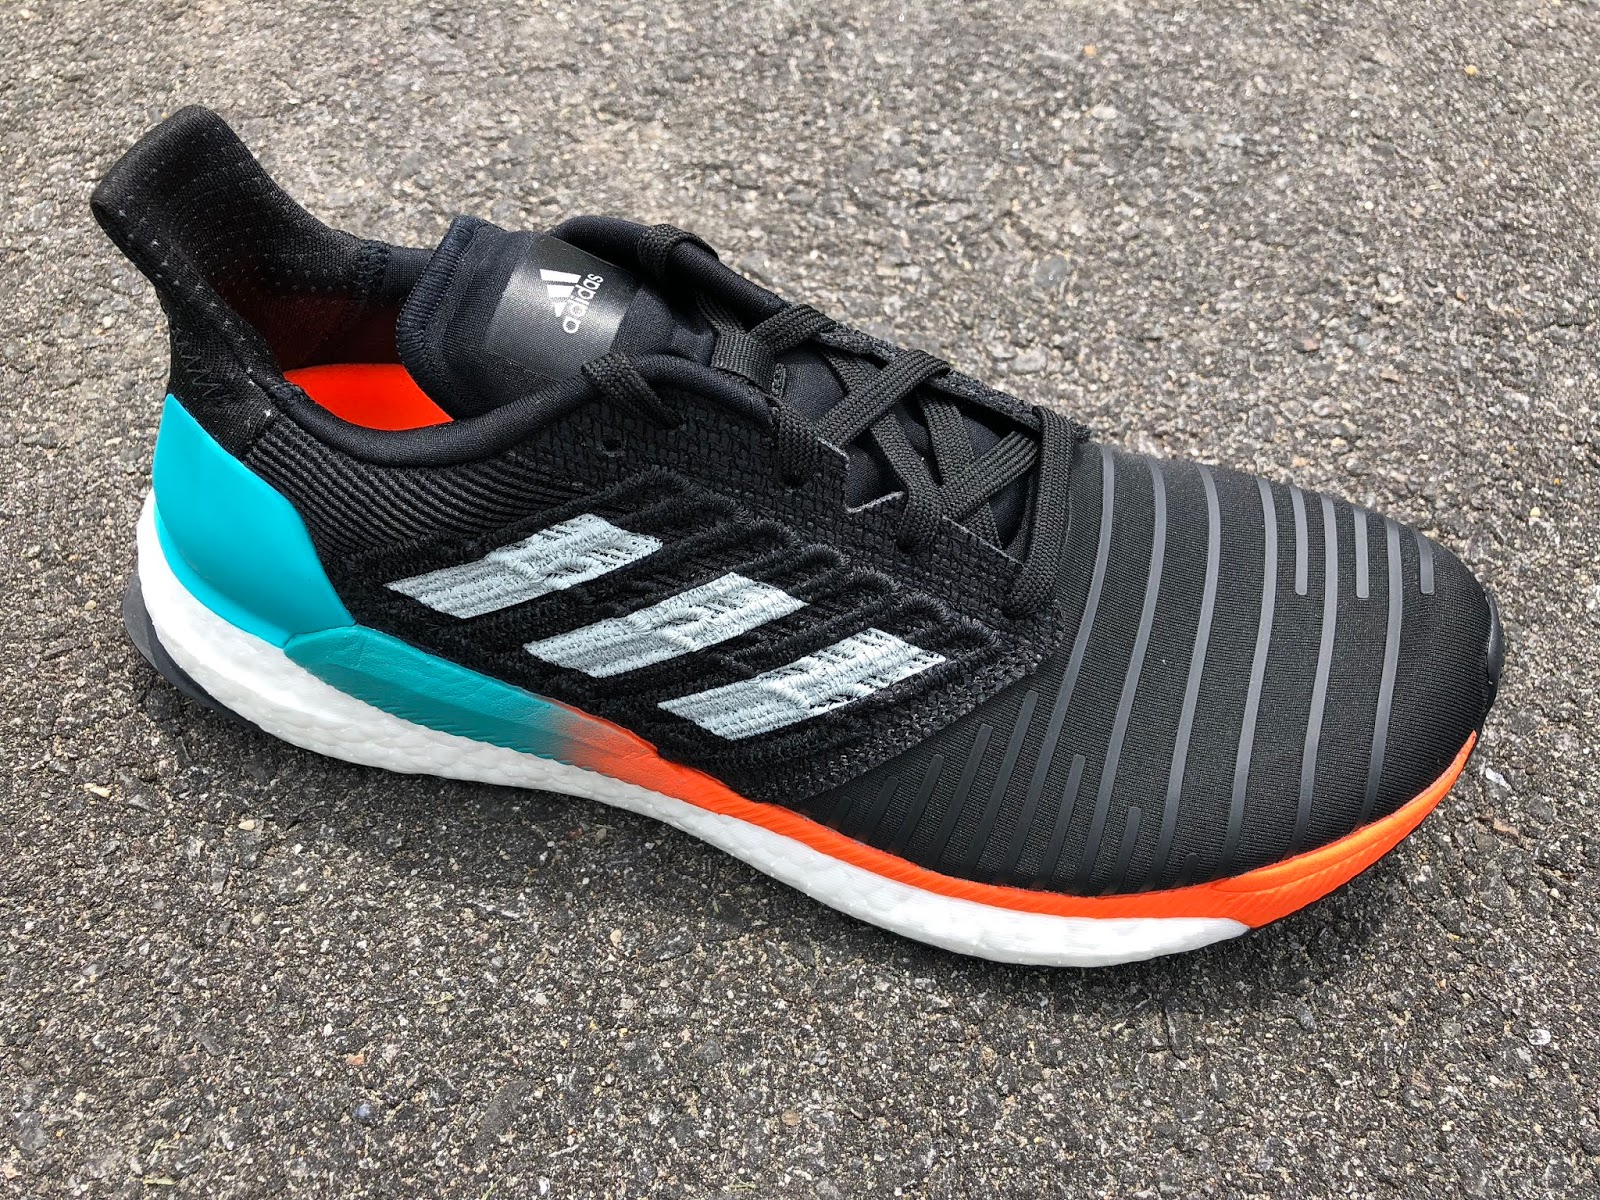 59a5d593e28 Road Trail Run  adidas Solar Boost Initial Review  Splashy Tropical ...